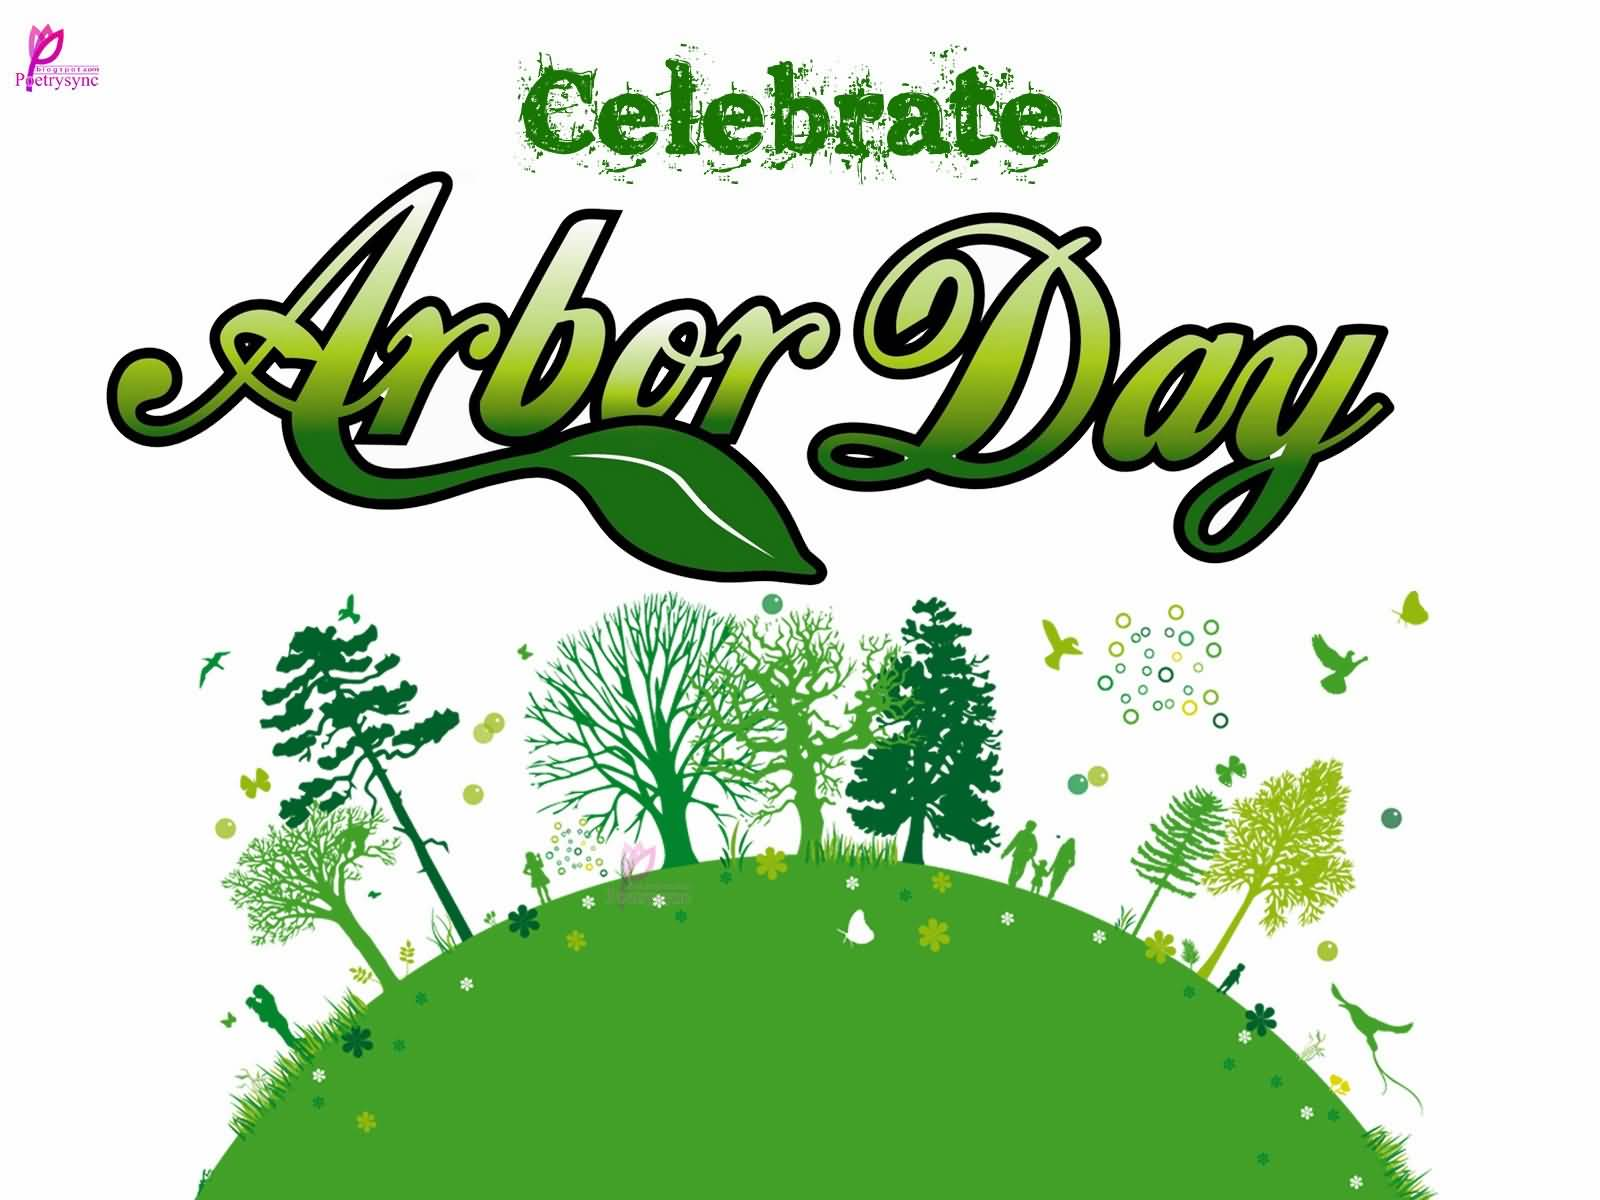 11-Arbor Day Wishes